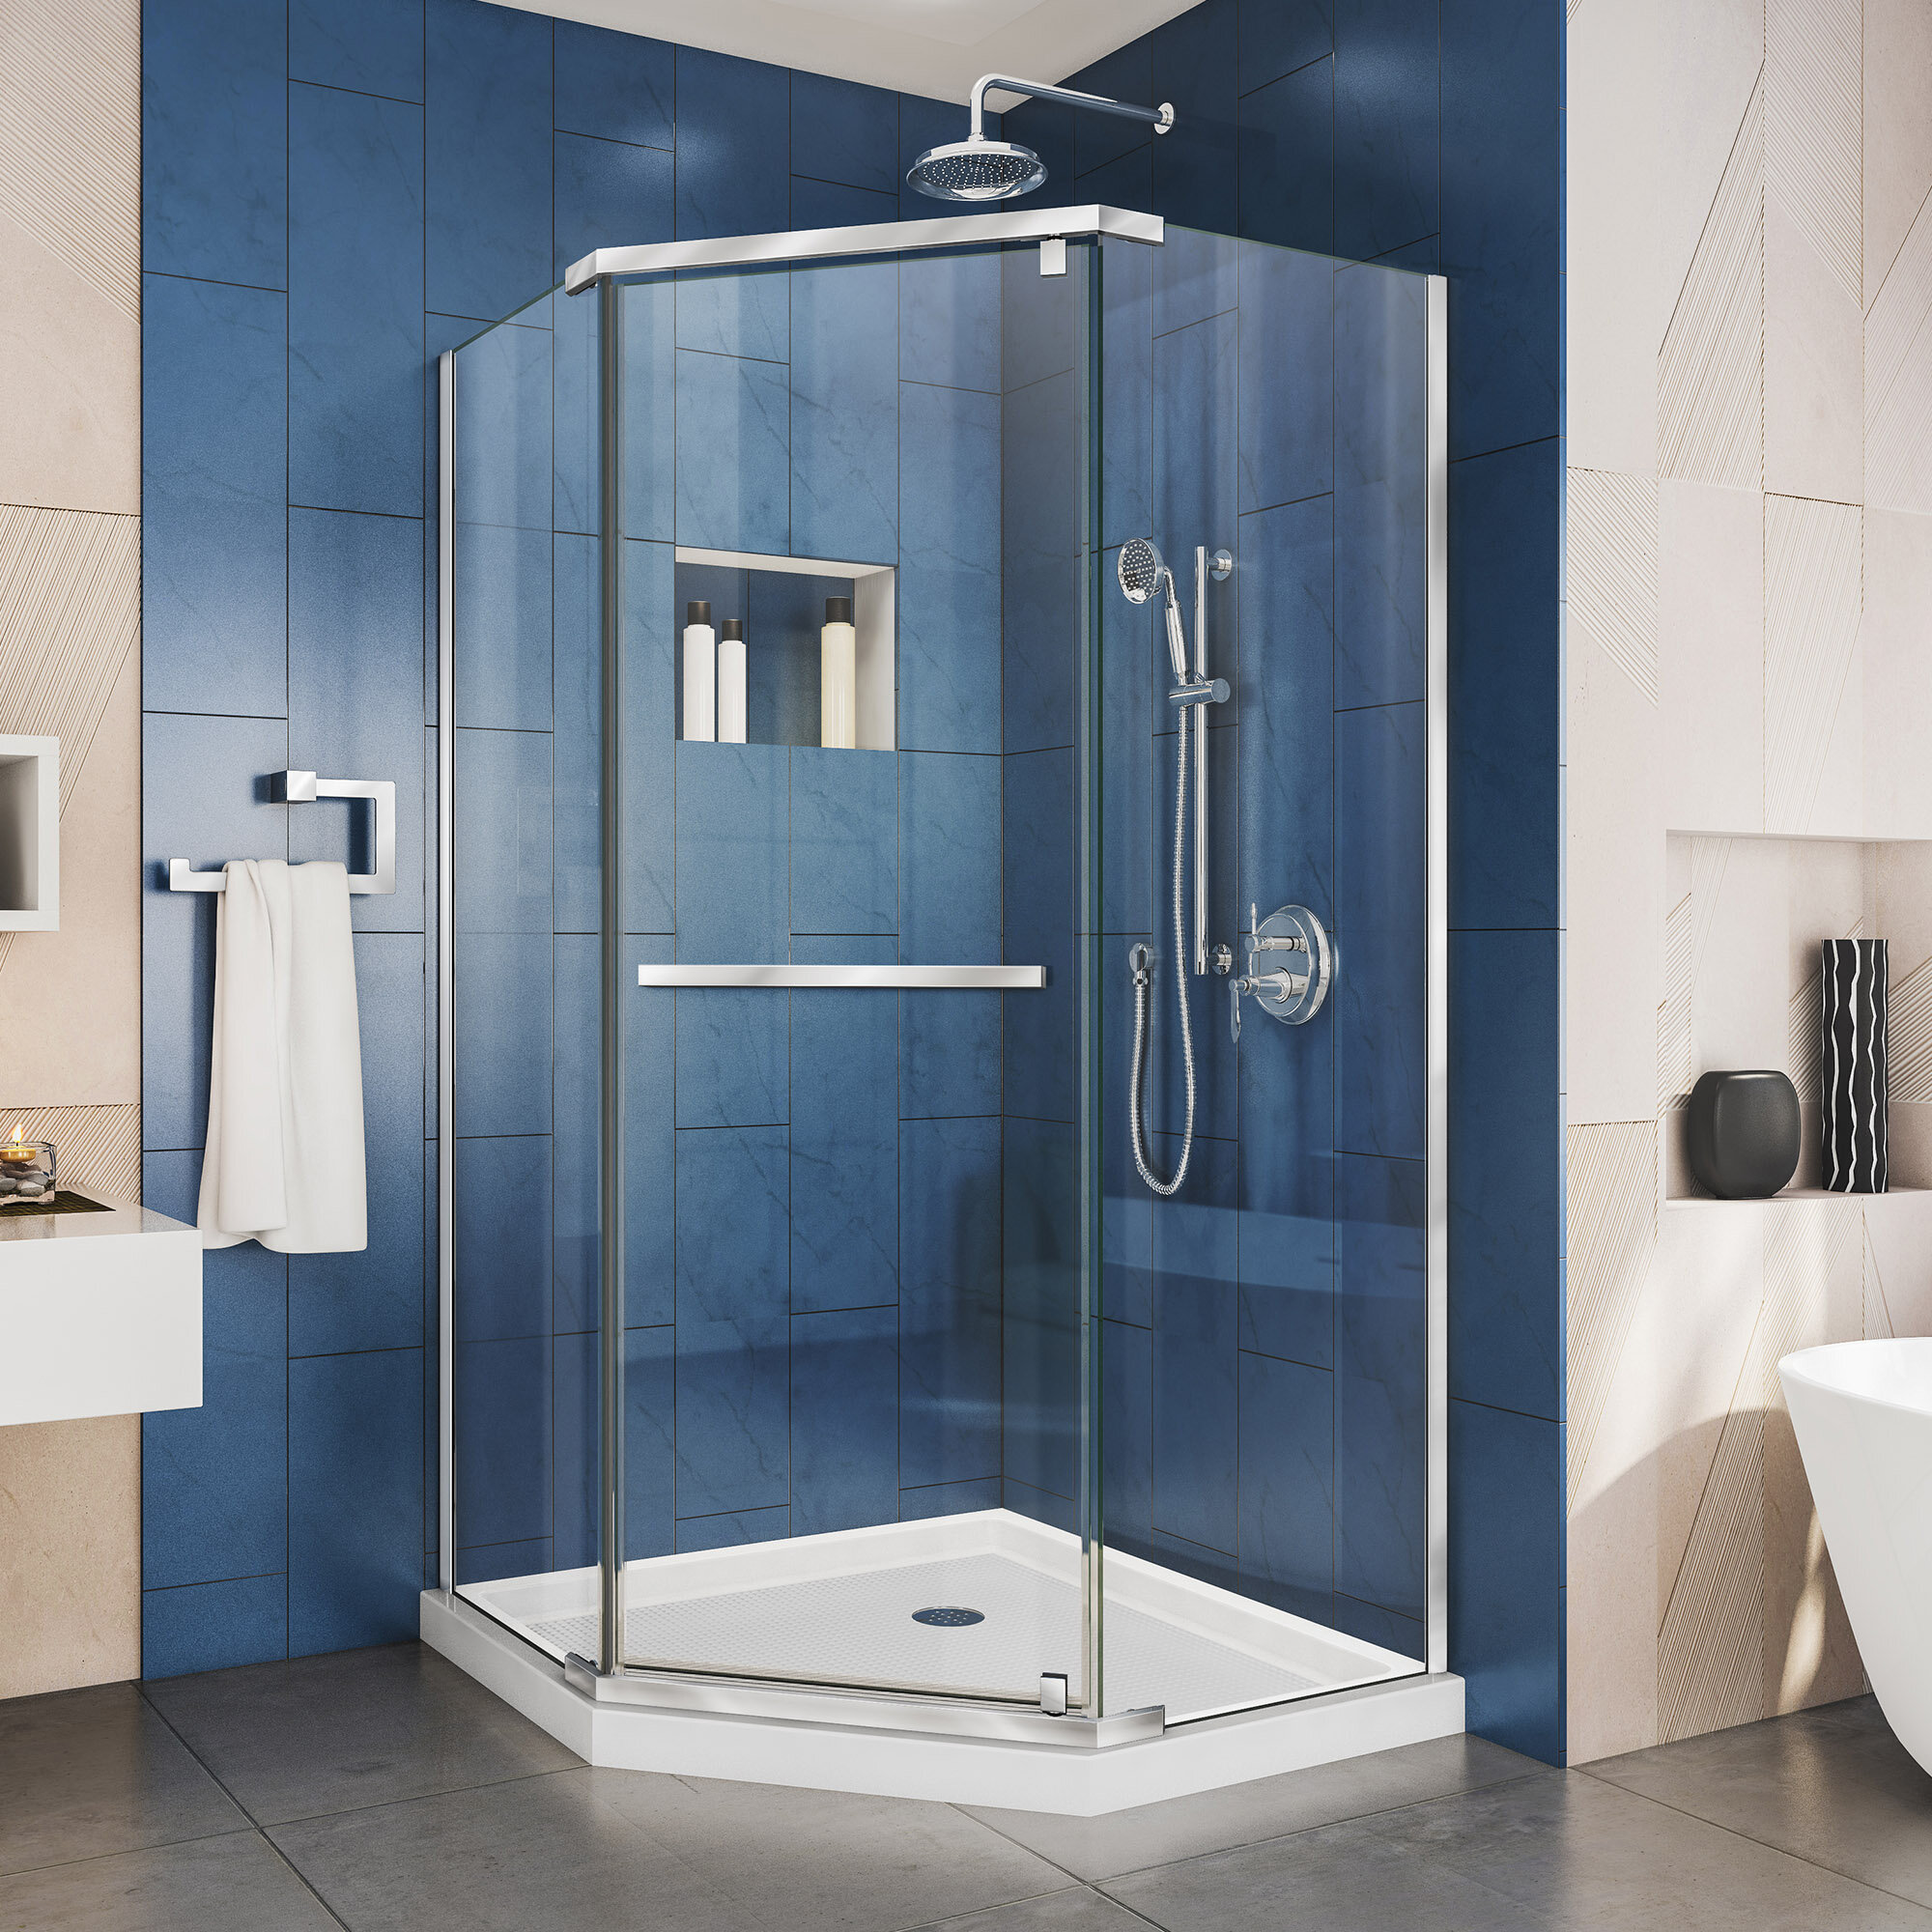 Dreamline Prism 3413 X 72 Neo Angle Pivot Shower Enclosure